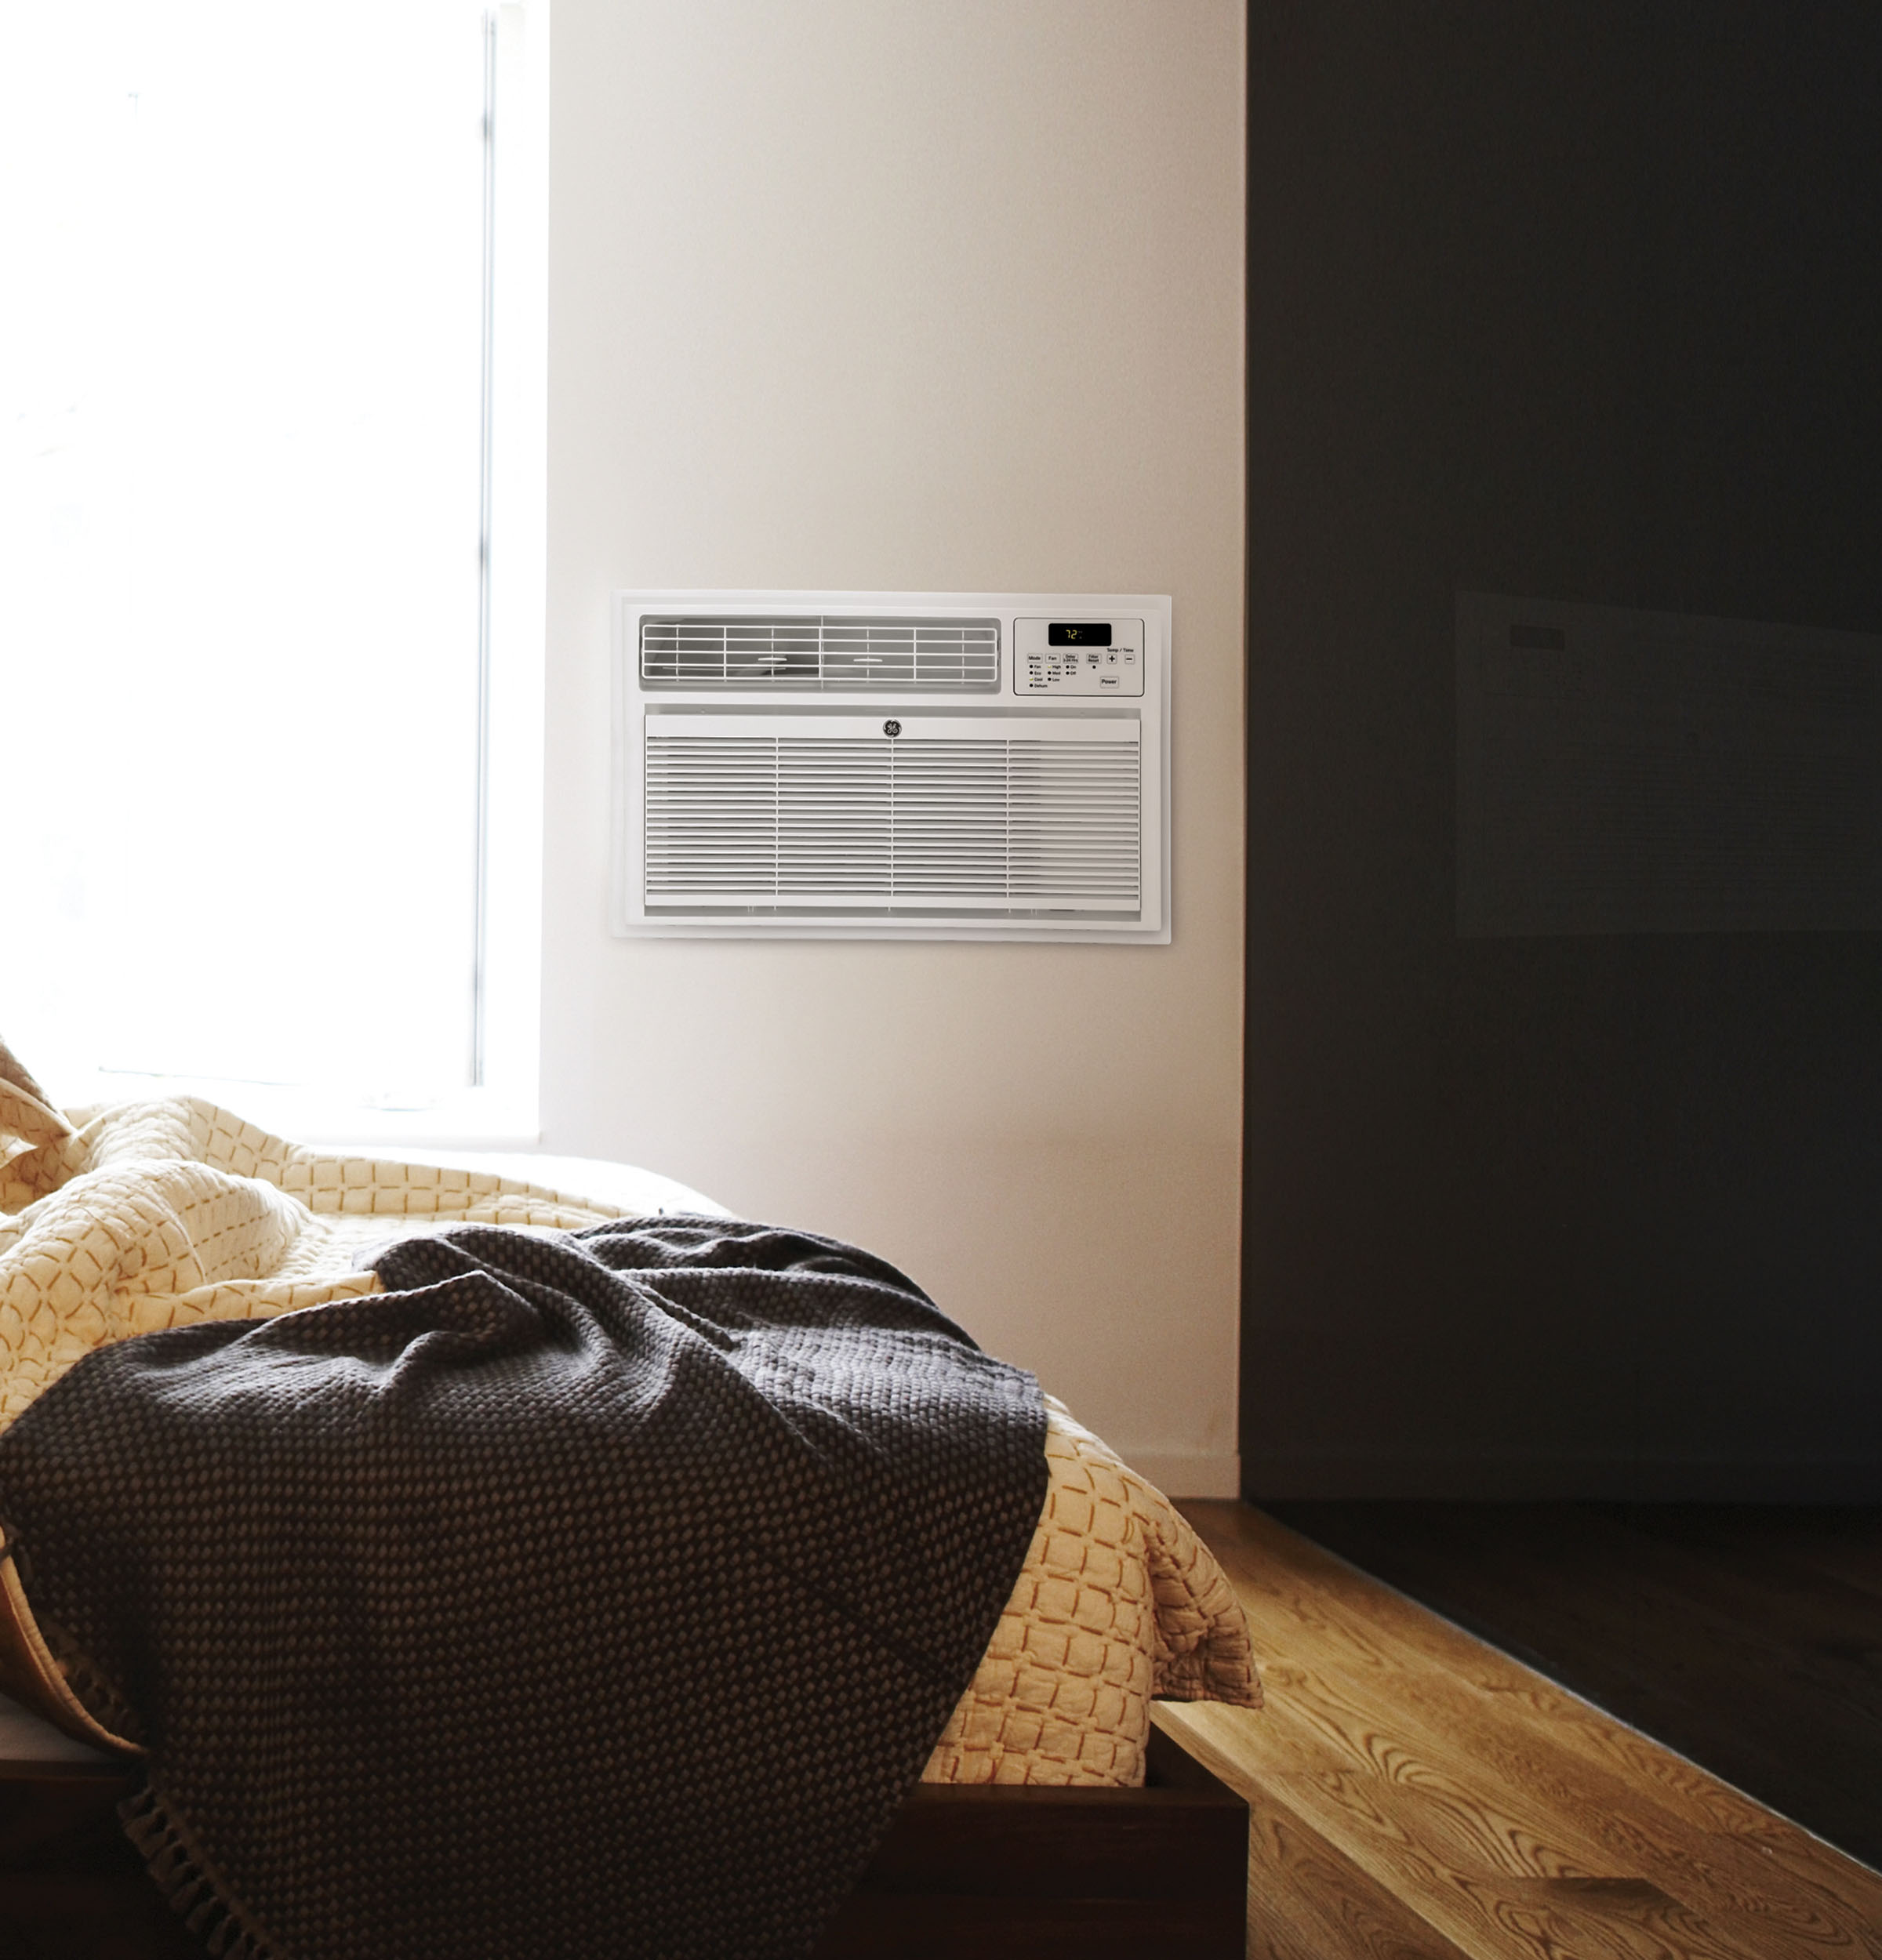 Model: AKCQ10DCA | GE GE® Built In Air Conditioner